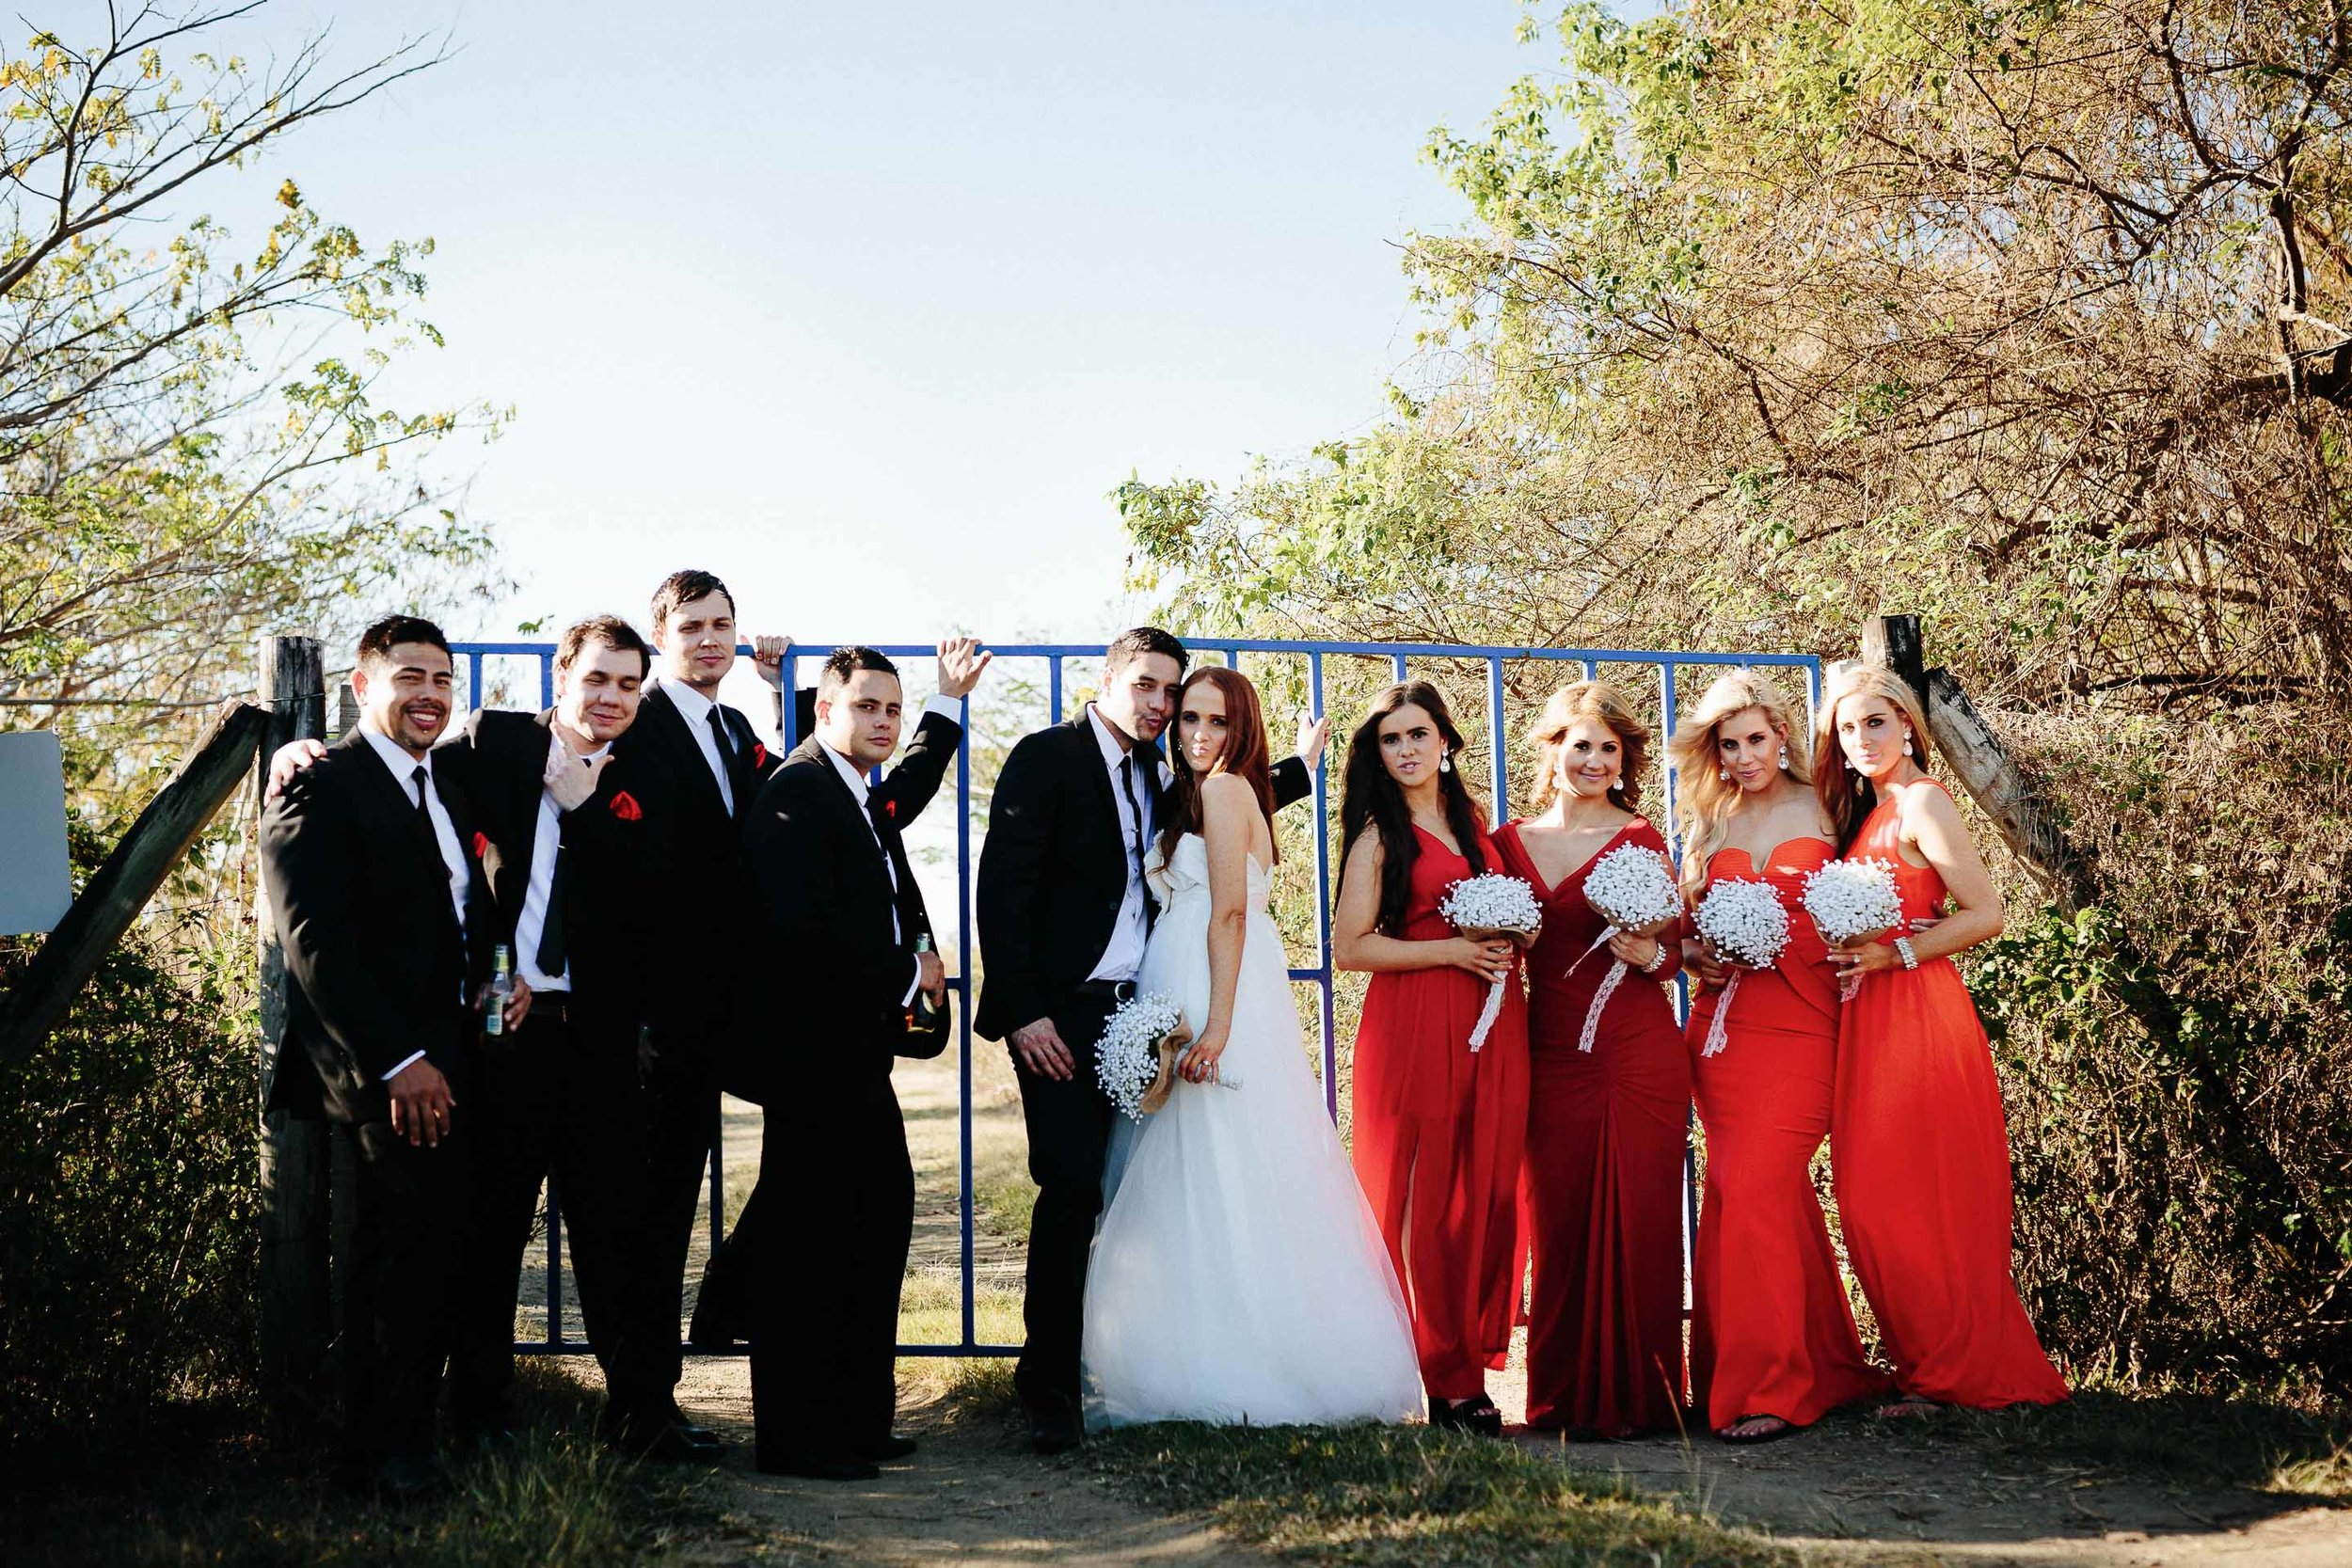 the bridal party sharing a light moment next to a blue gate